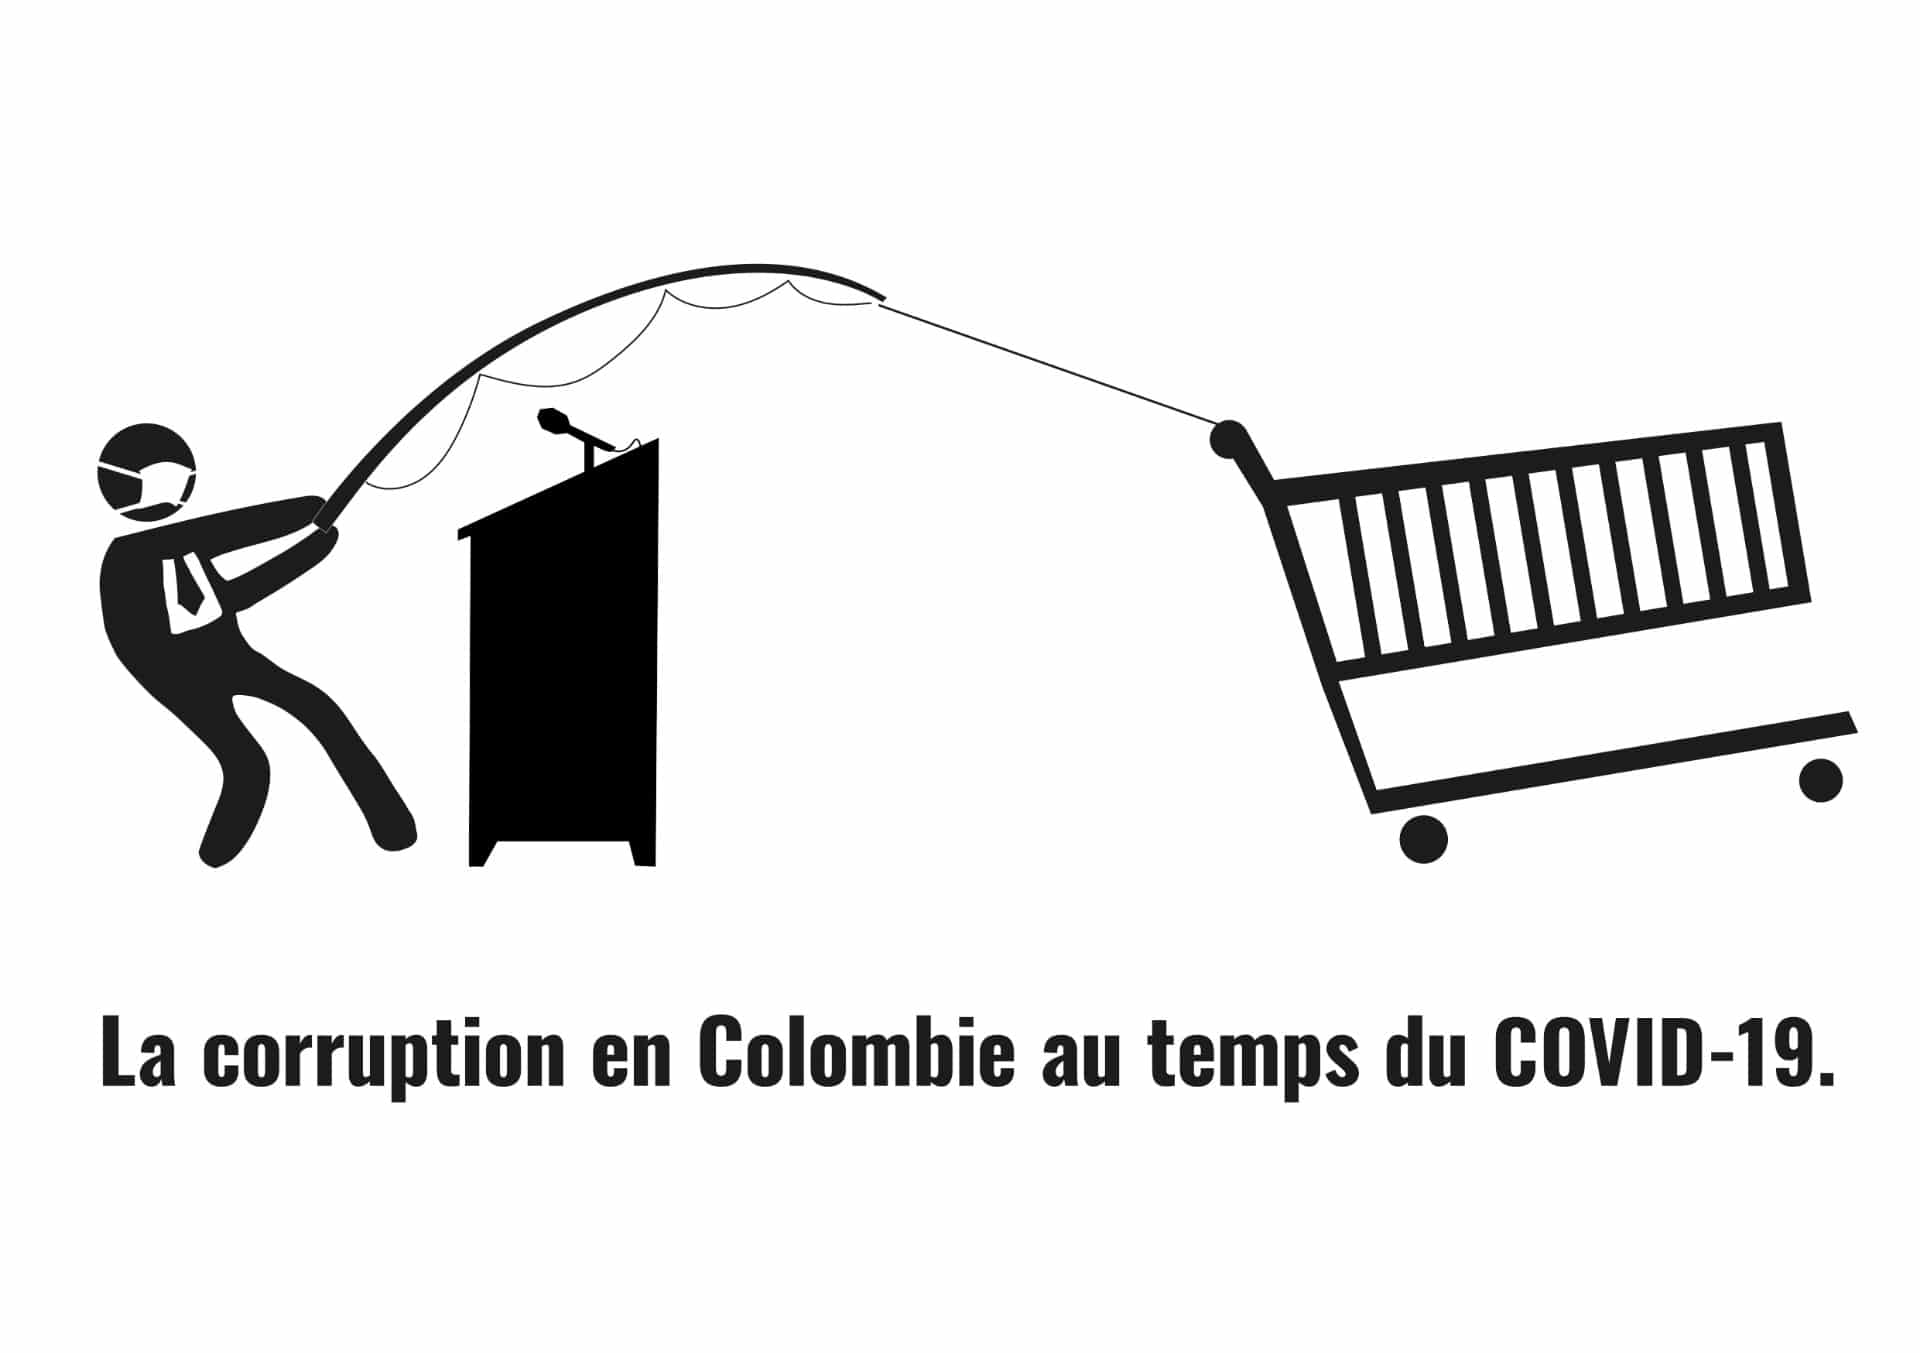 Le virus de la corruption en Colombie